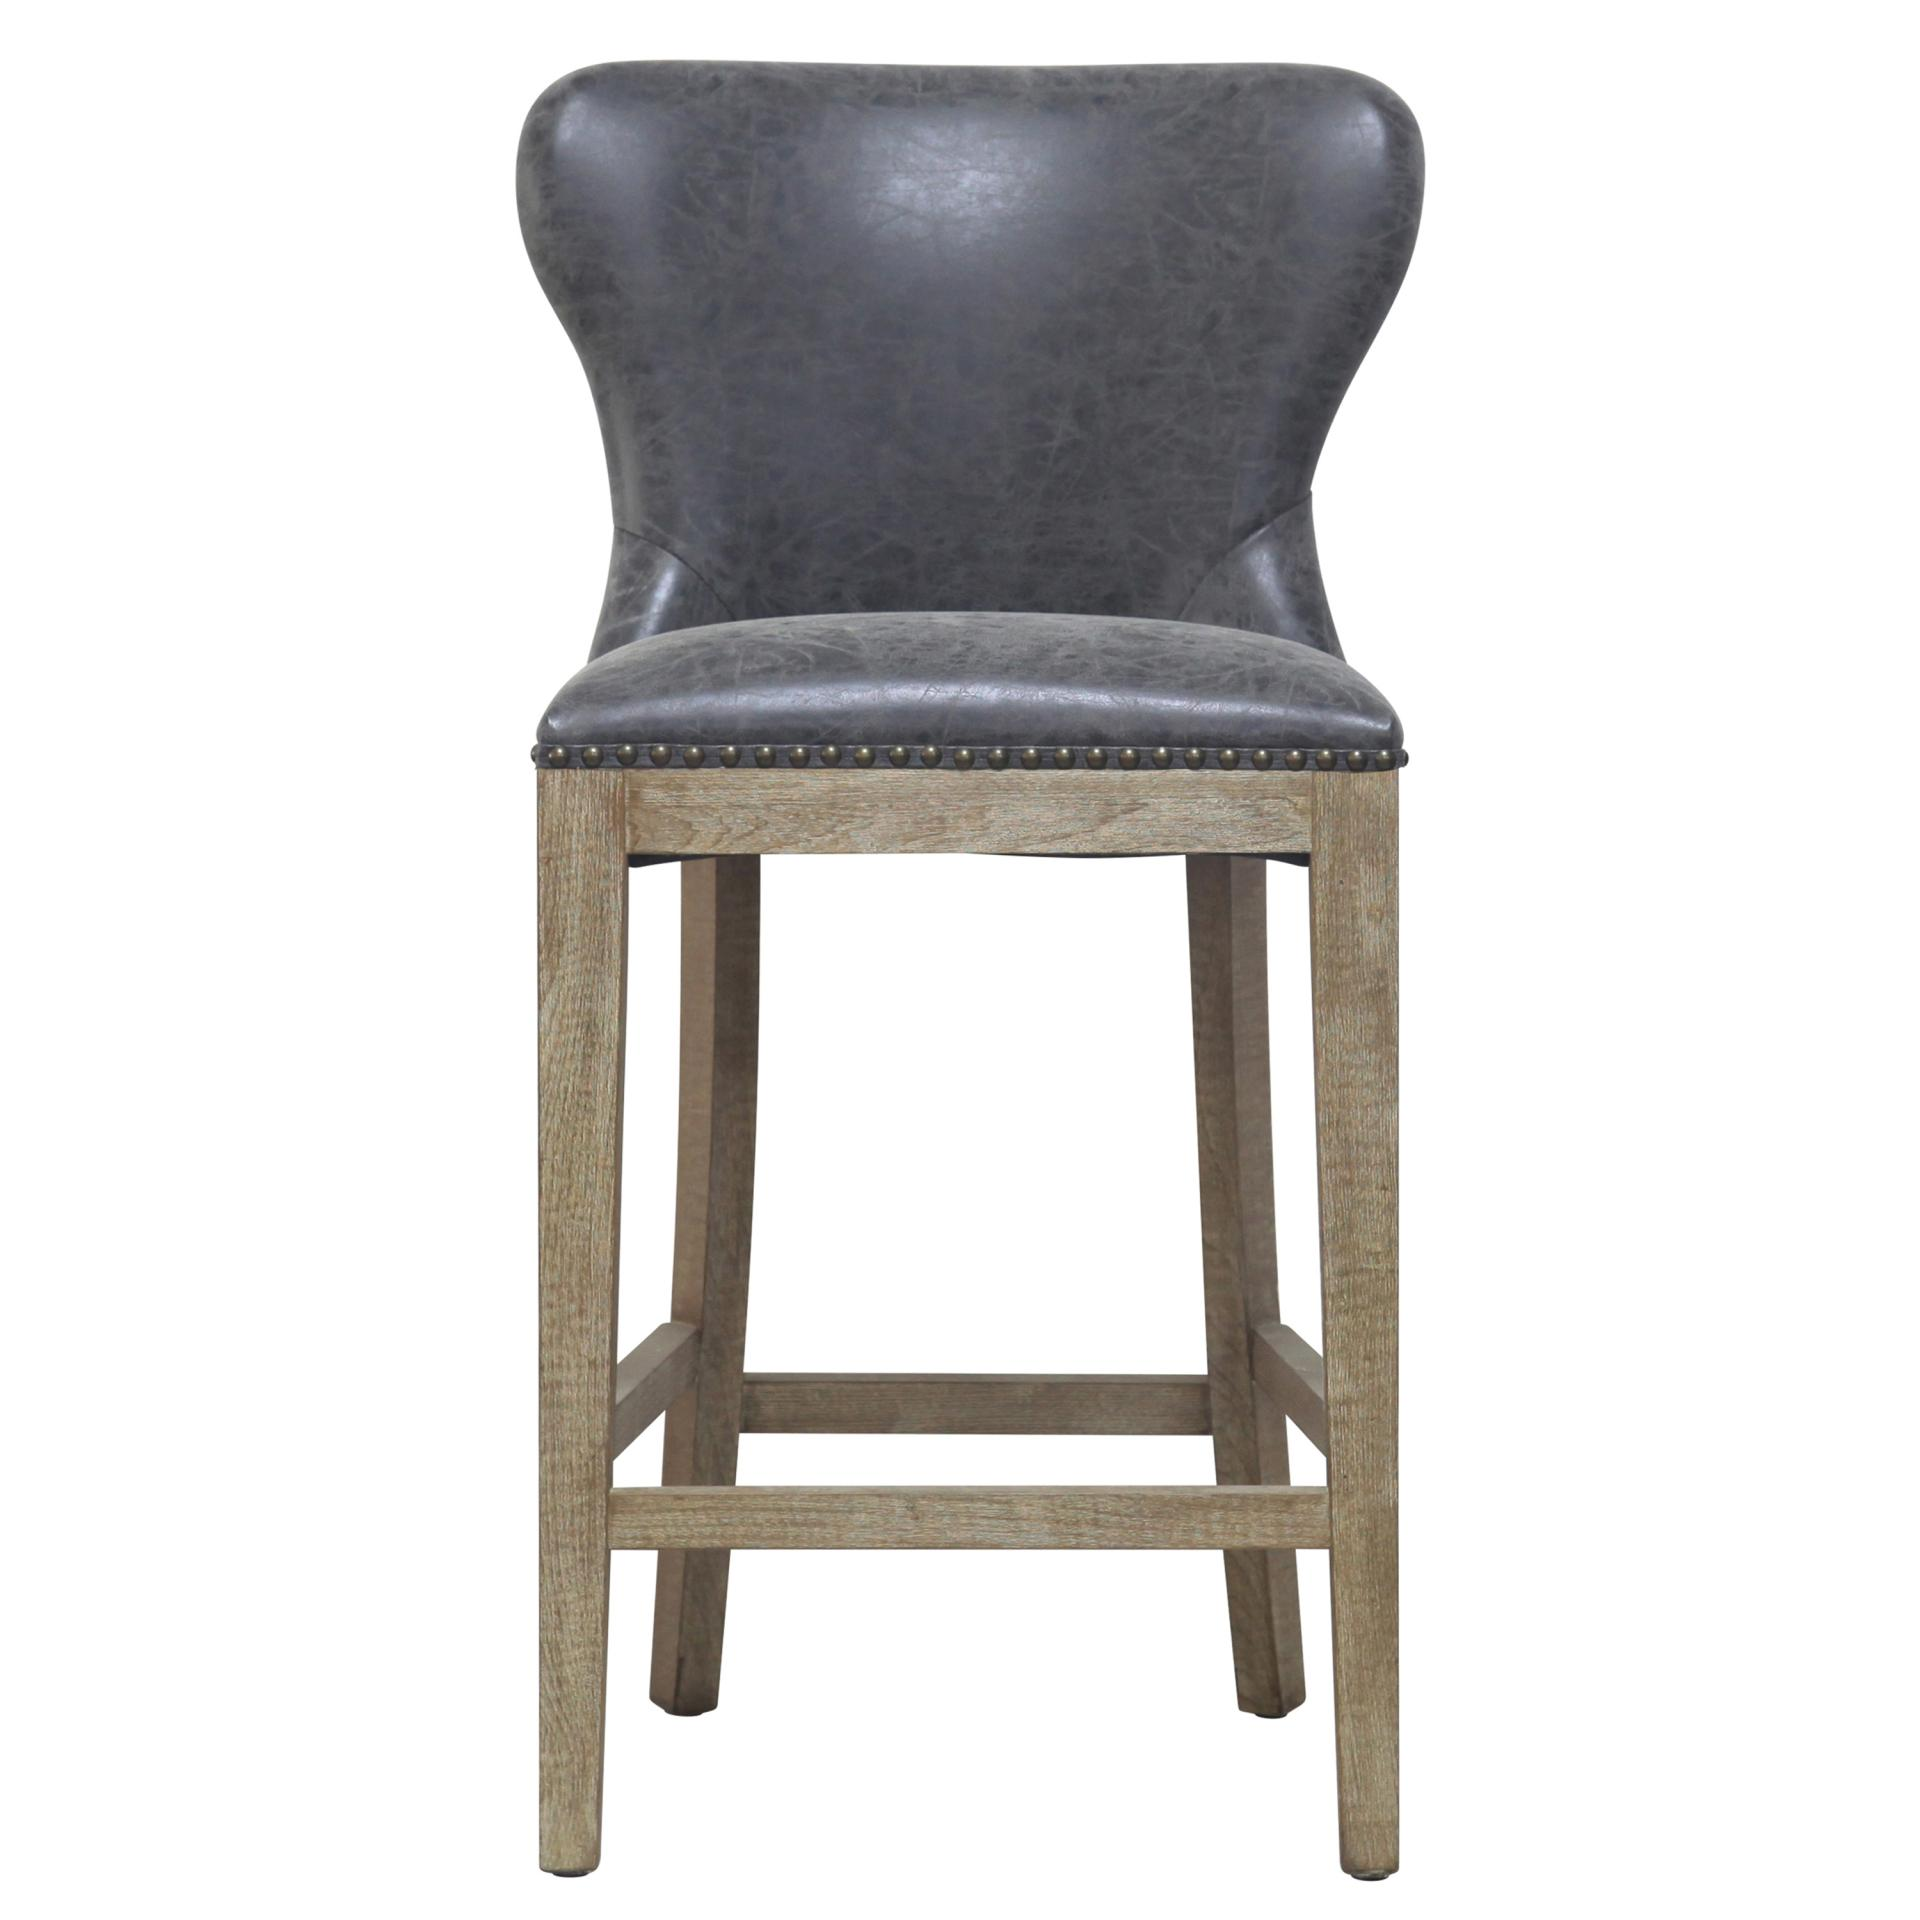 3900020 Ncl Npd Home Furniture Wholesale Lifestyle